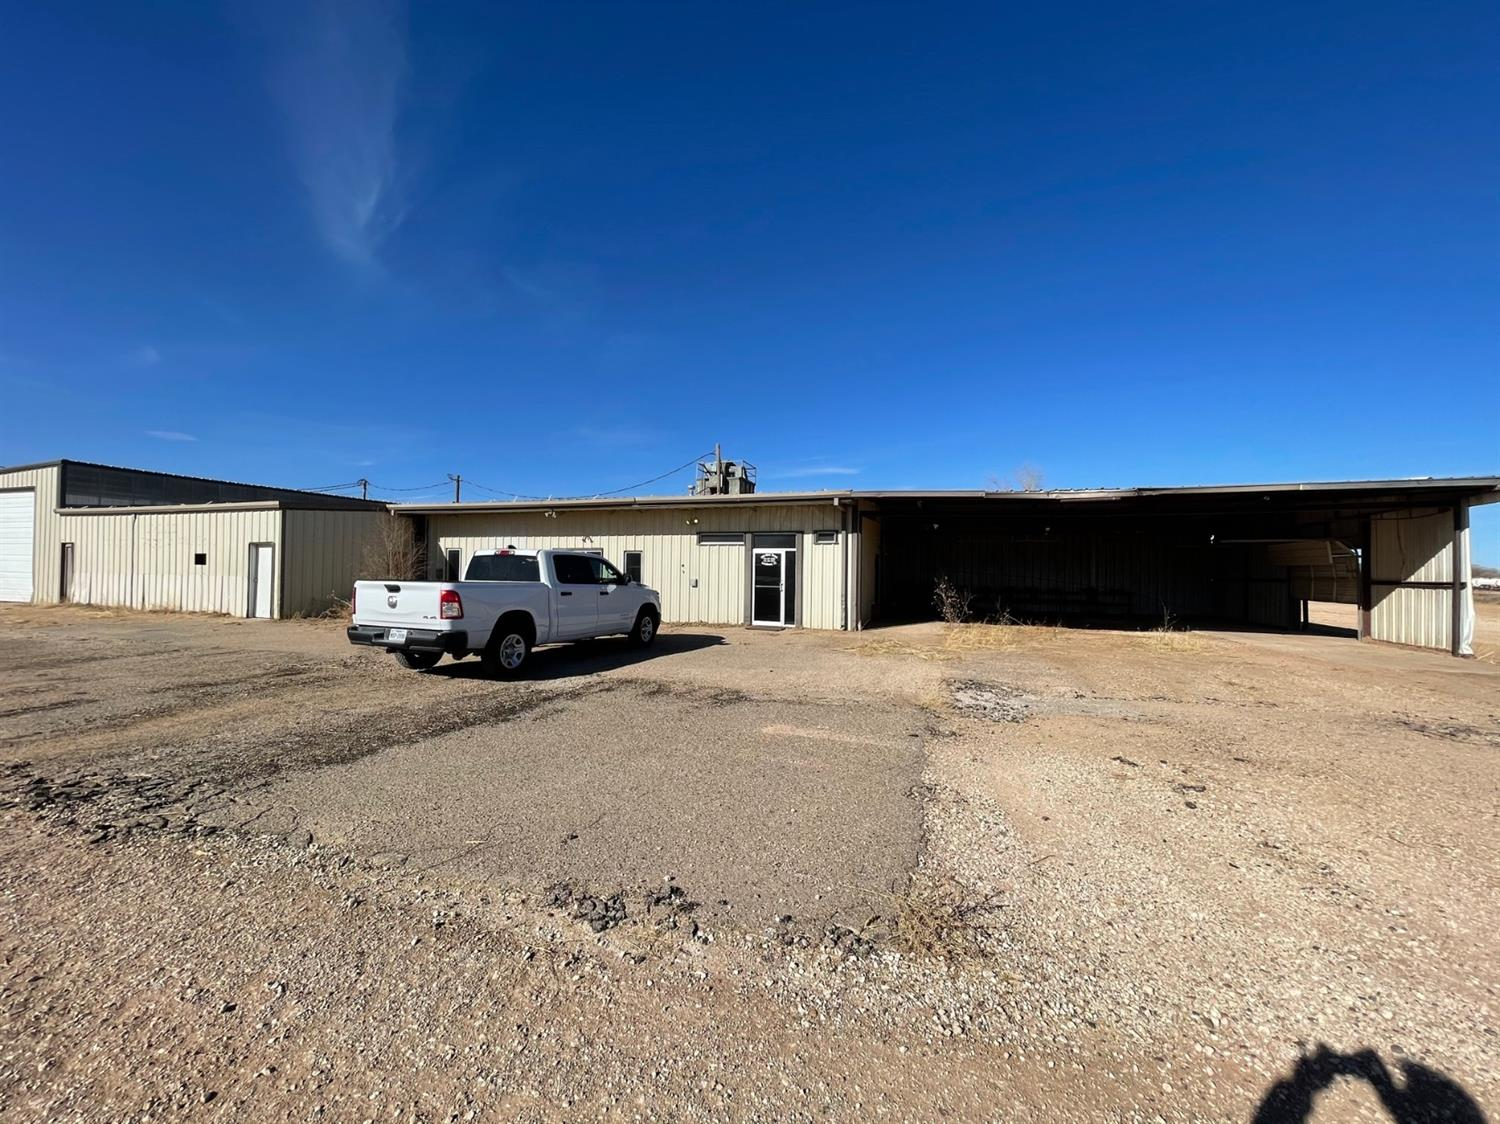 Rare opportunity! This commercial property comes with a lot of space for the money. Has several small offices up front, with a common area. Also included is over 4000 ft of metal shop, some built in 2018. Also has about 8.5 ACRES of caliche the property sits on. Has been used for multiple purposes, most recently for trucking.